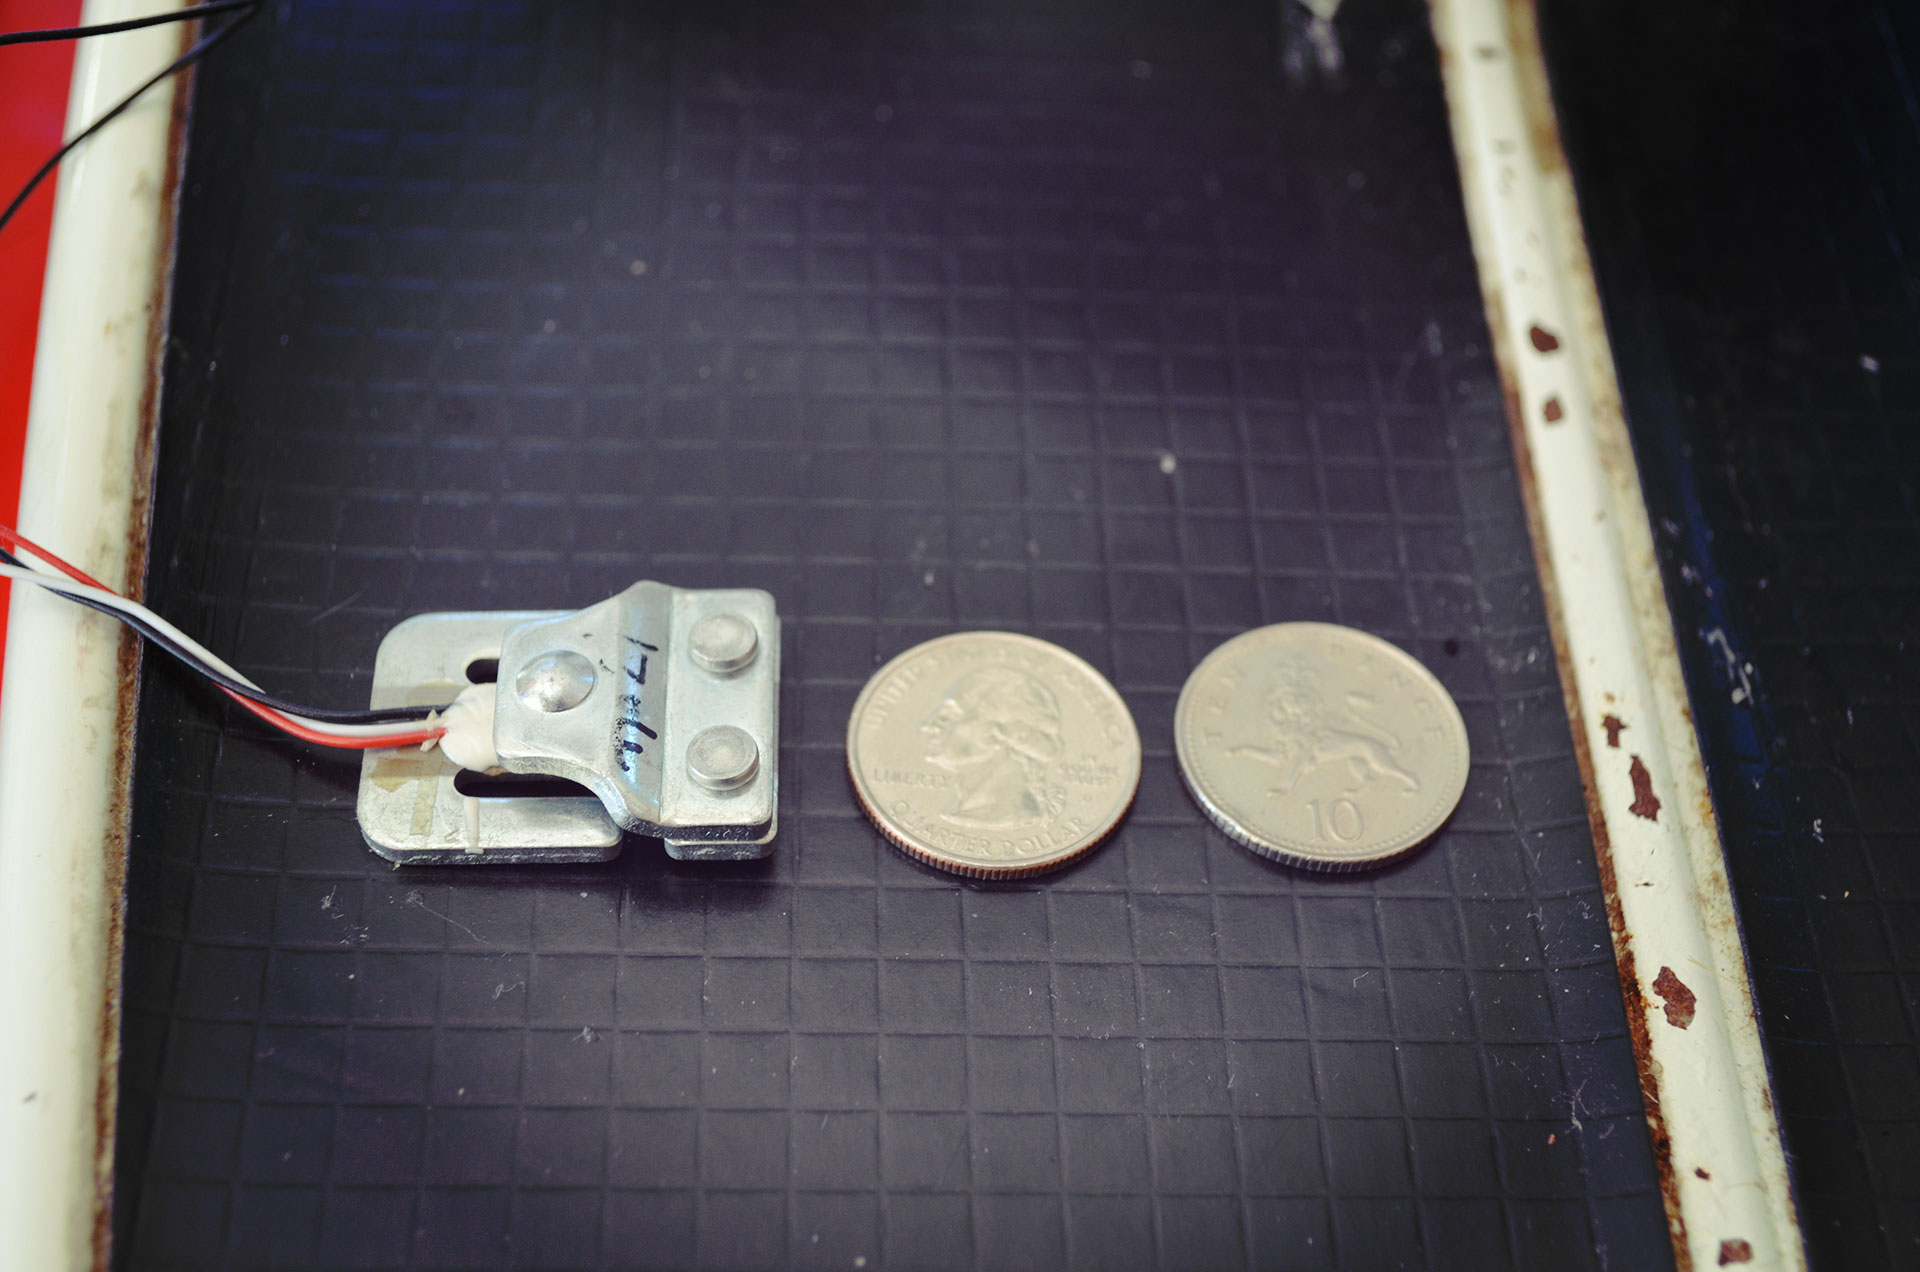 The load sensor I am testing next to a US Quarter and a Limey 10 p coin for scale reference. Weight is calculated by placing a load on the plate and measuring the change in resistance.